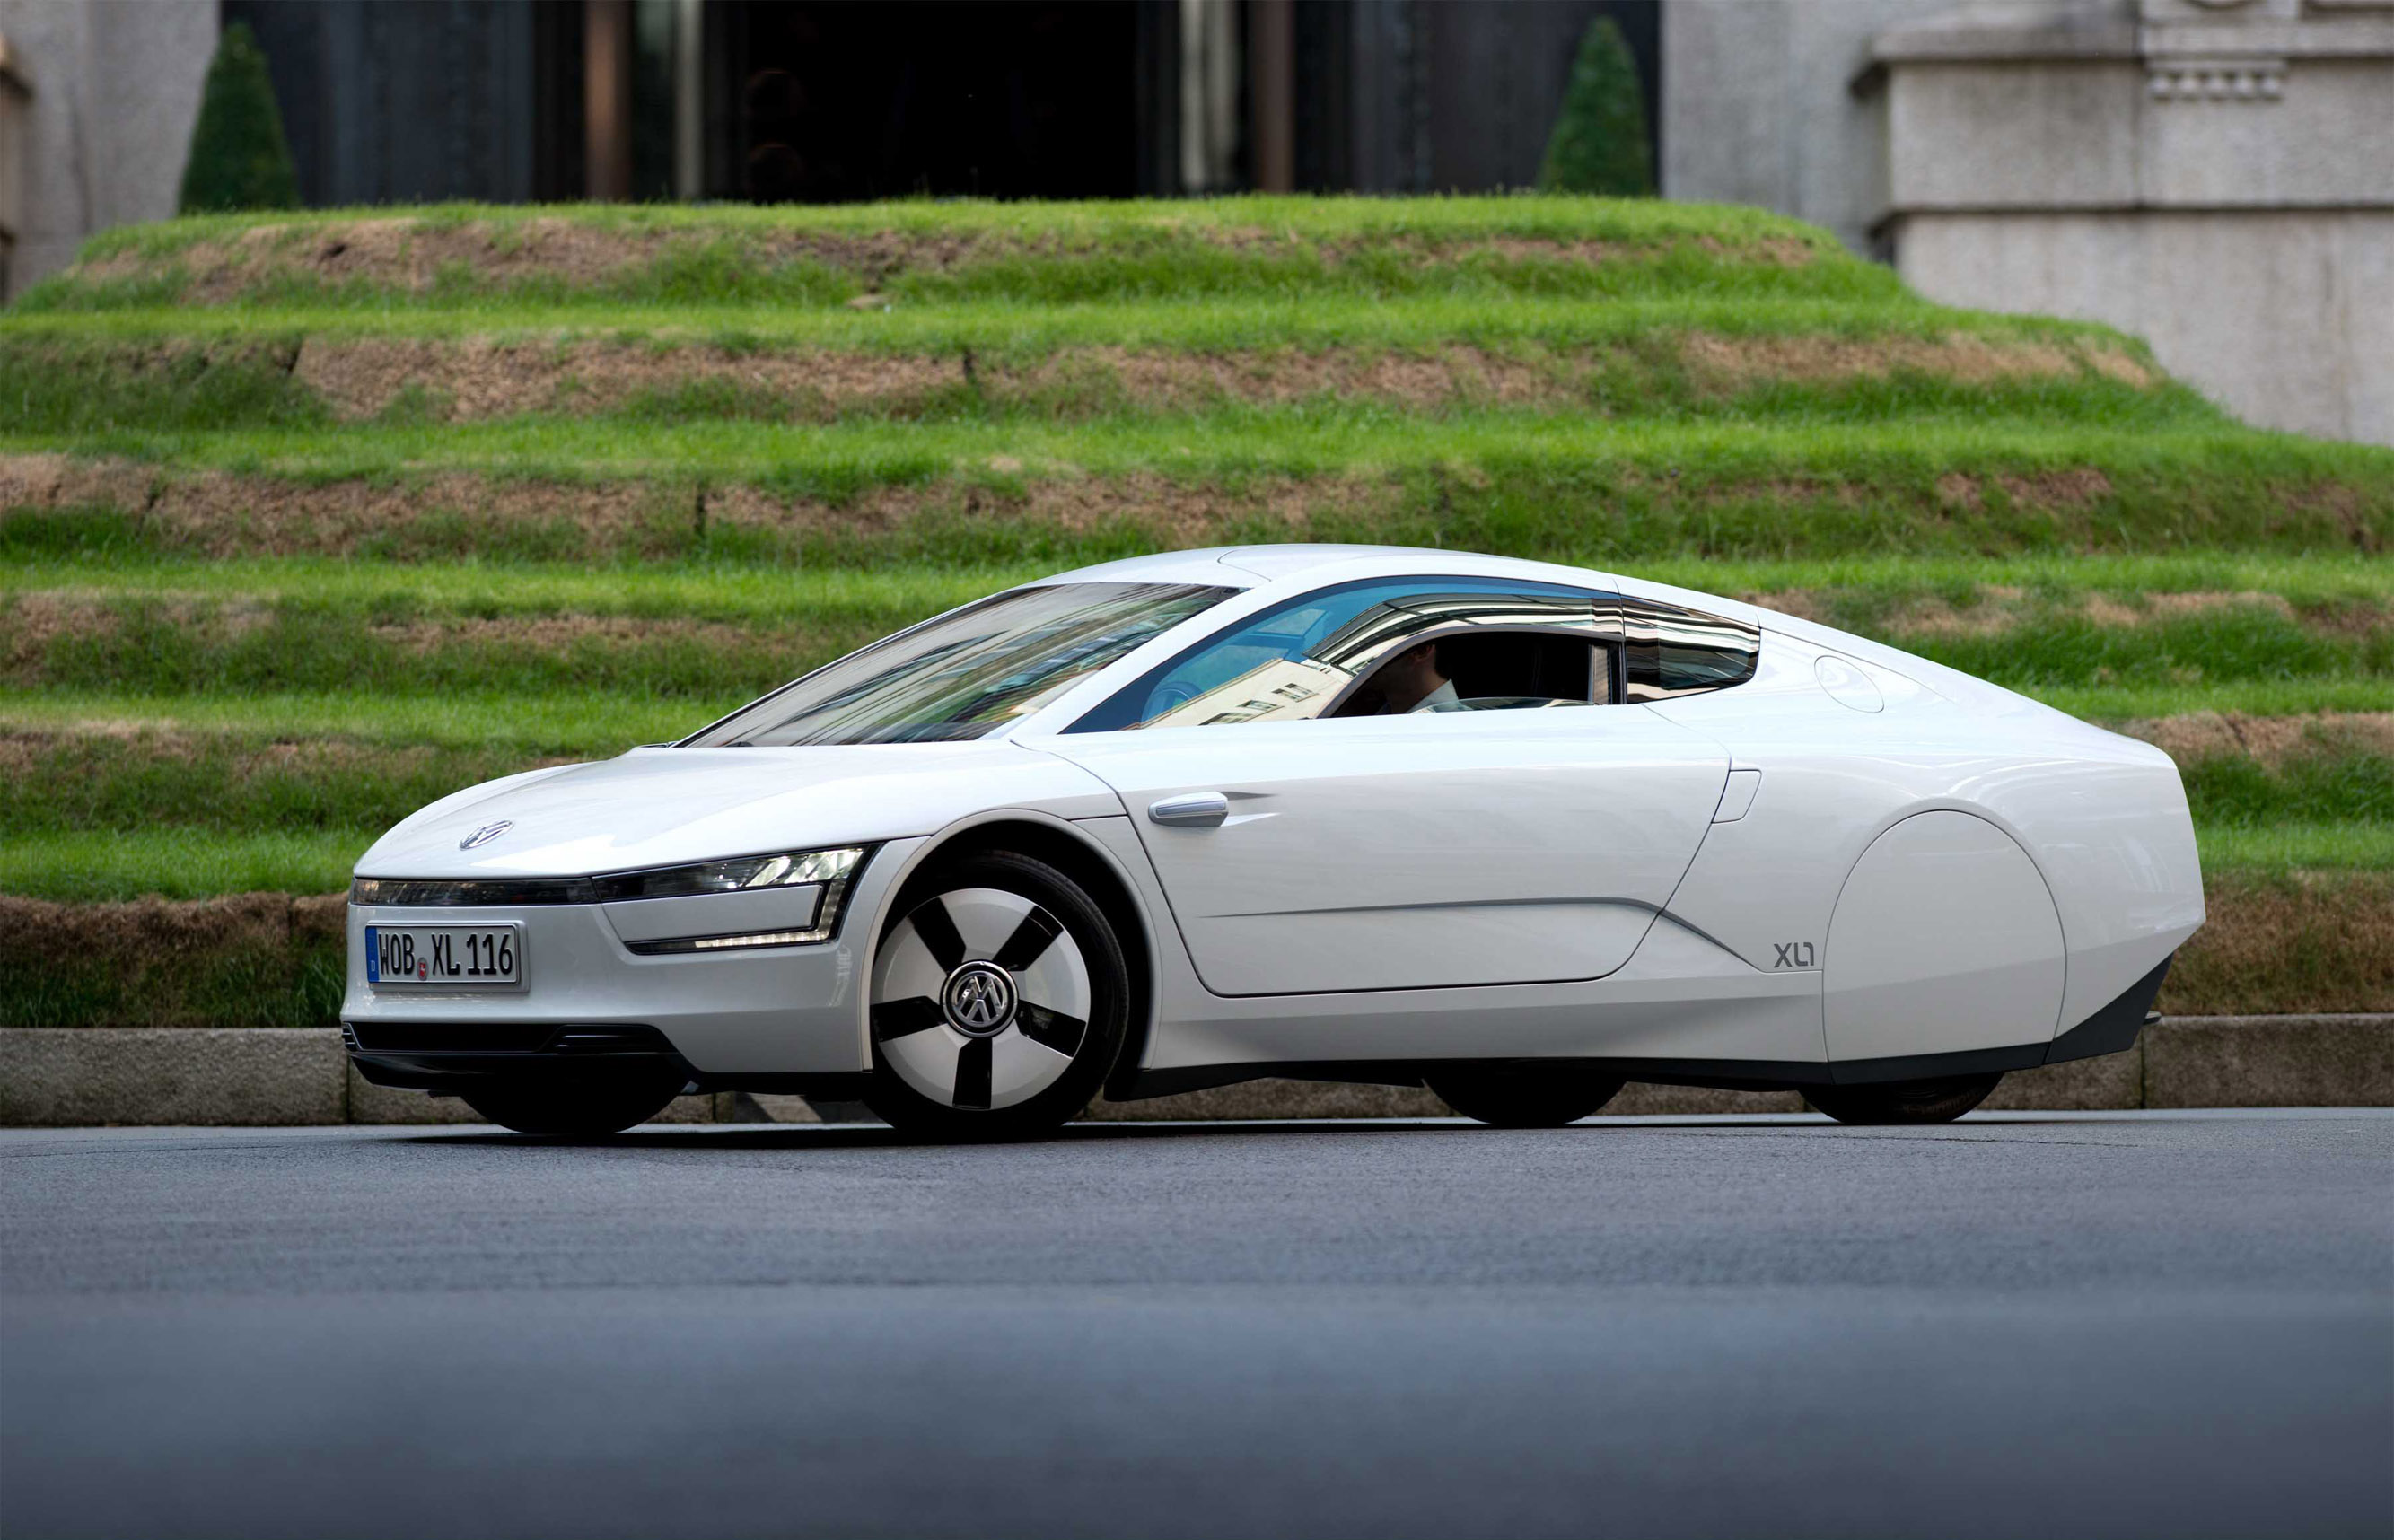 volkswagen xl  london     km